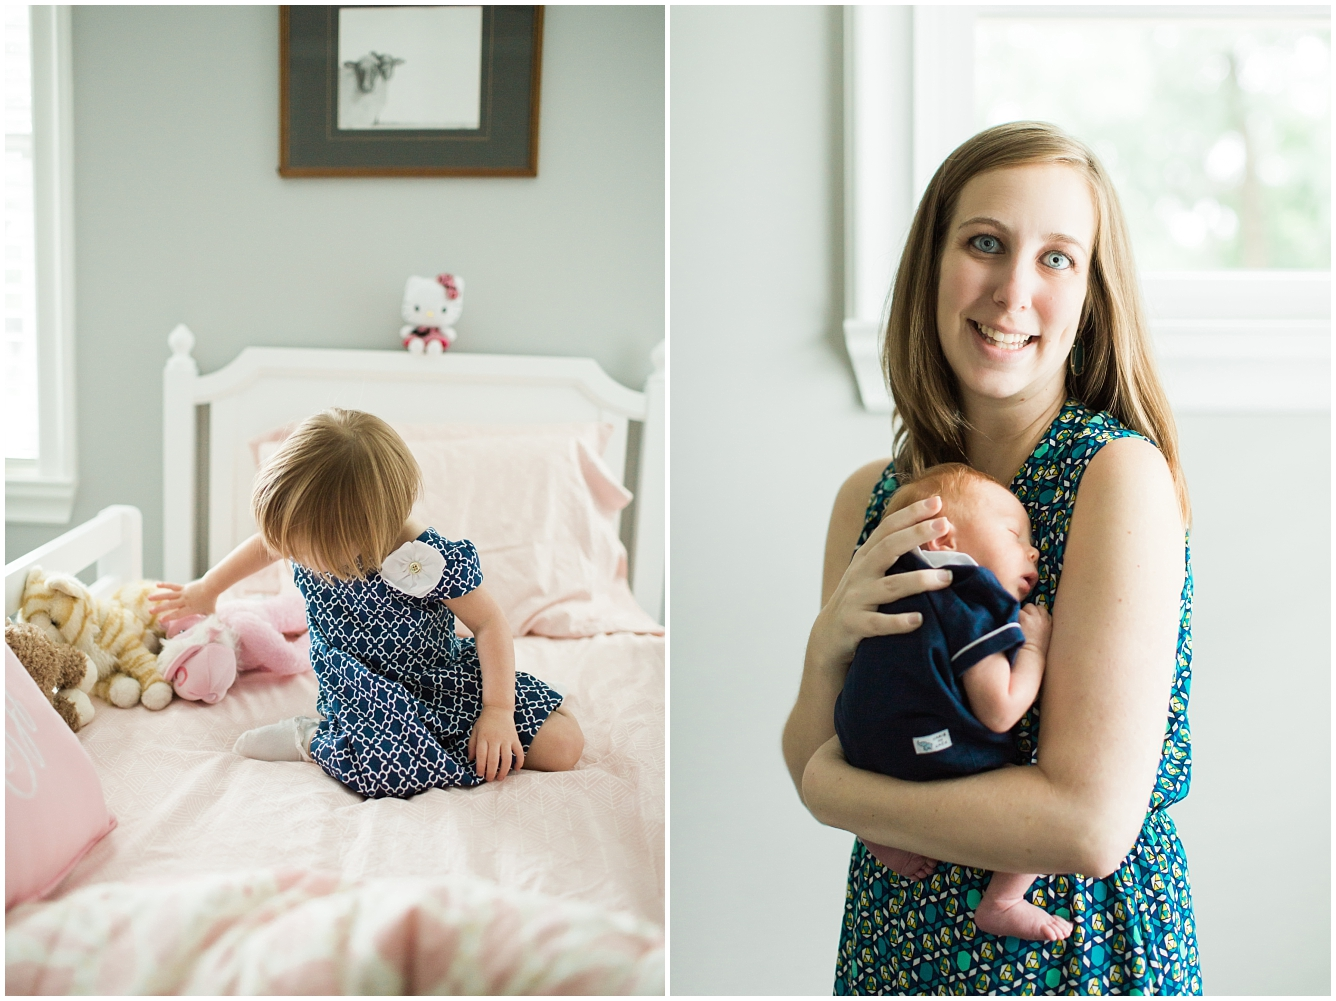 katy-lifestlye-newborn-photographer-10